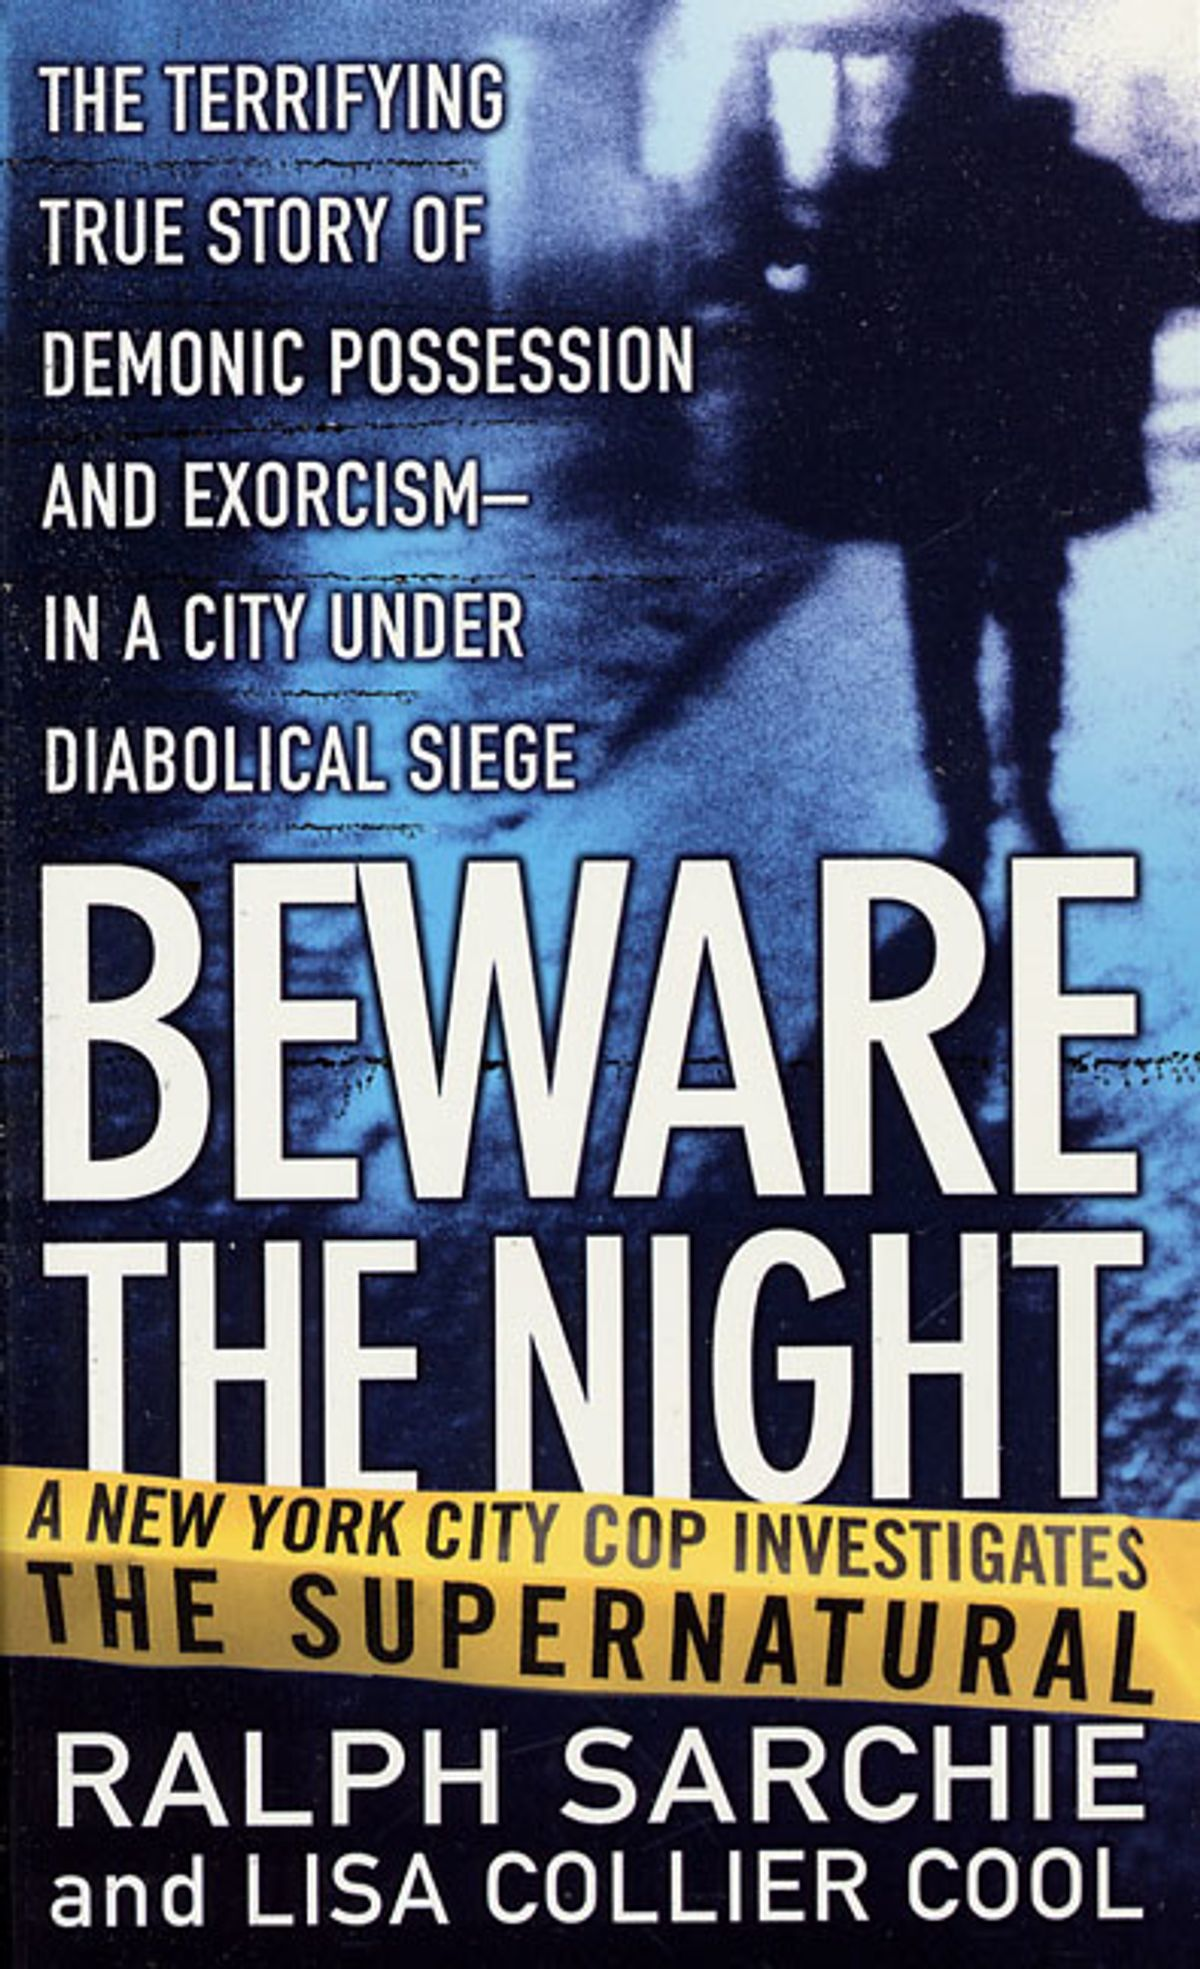 'Beware the Night' by Ralph Sarchie and Lisa Collier Cool